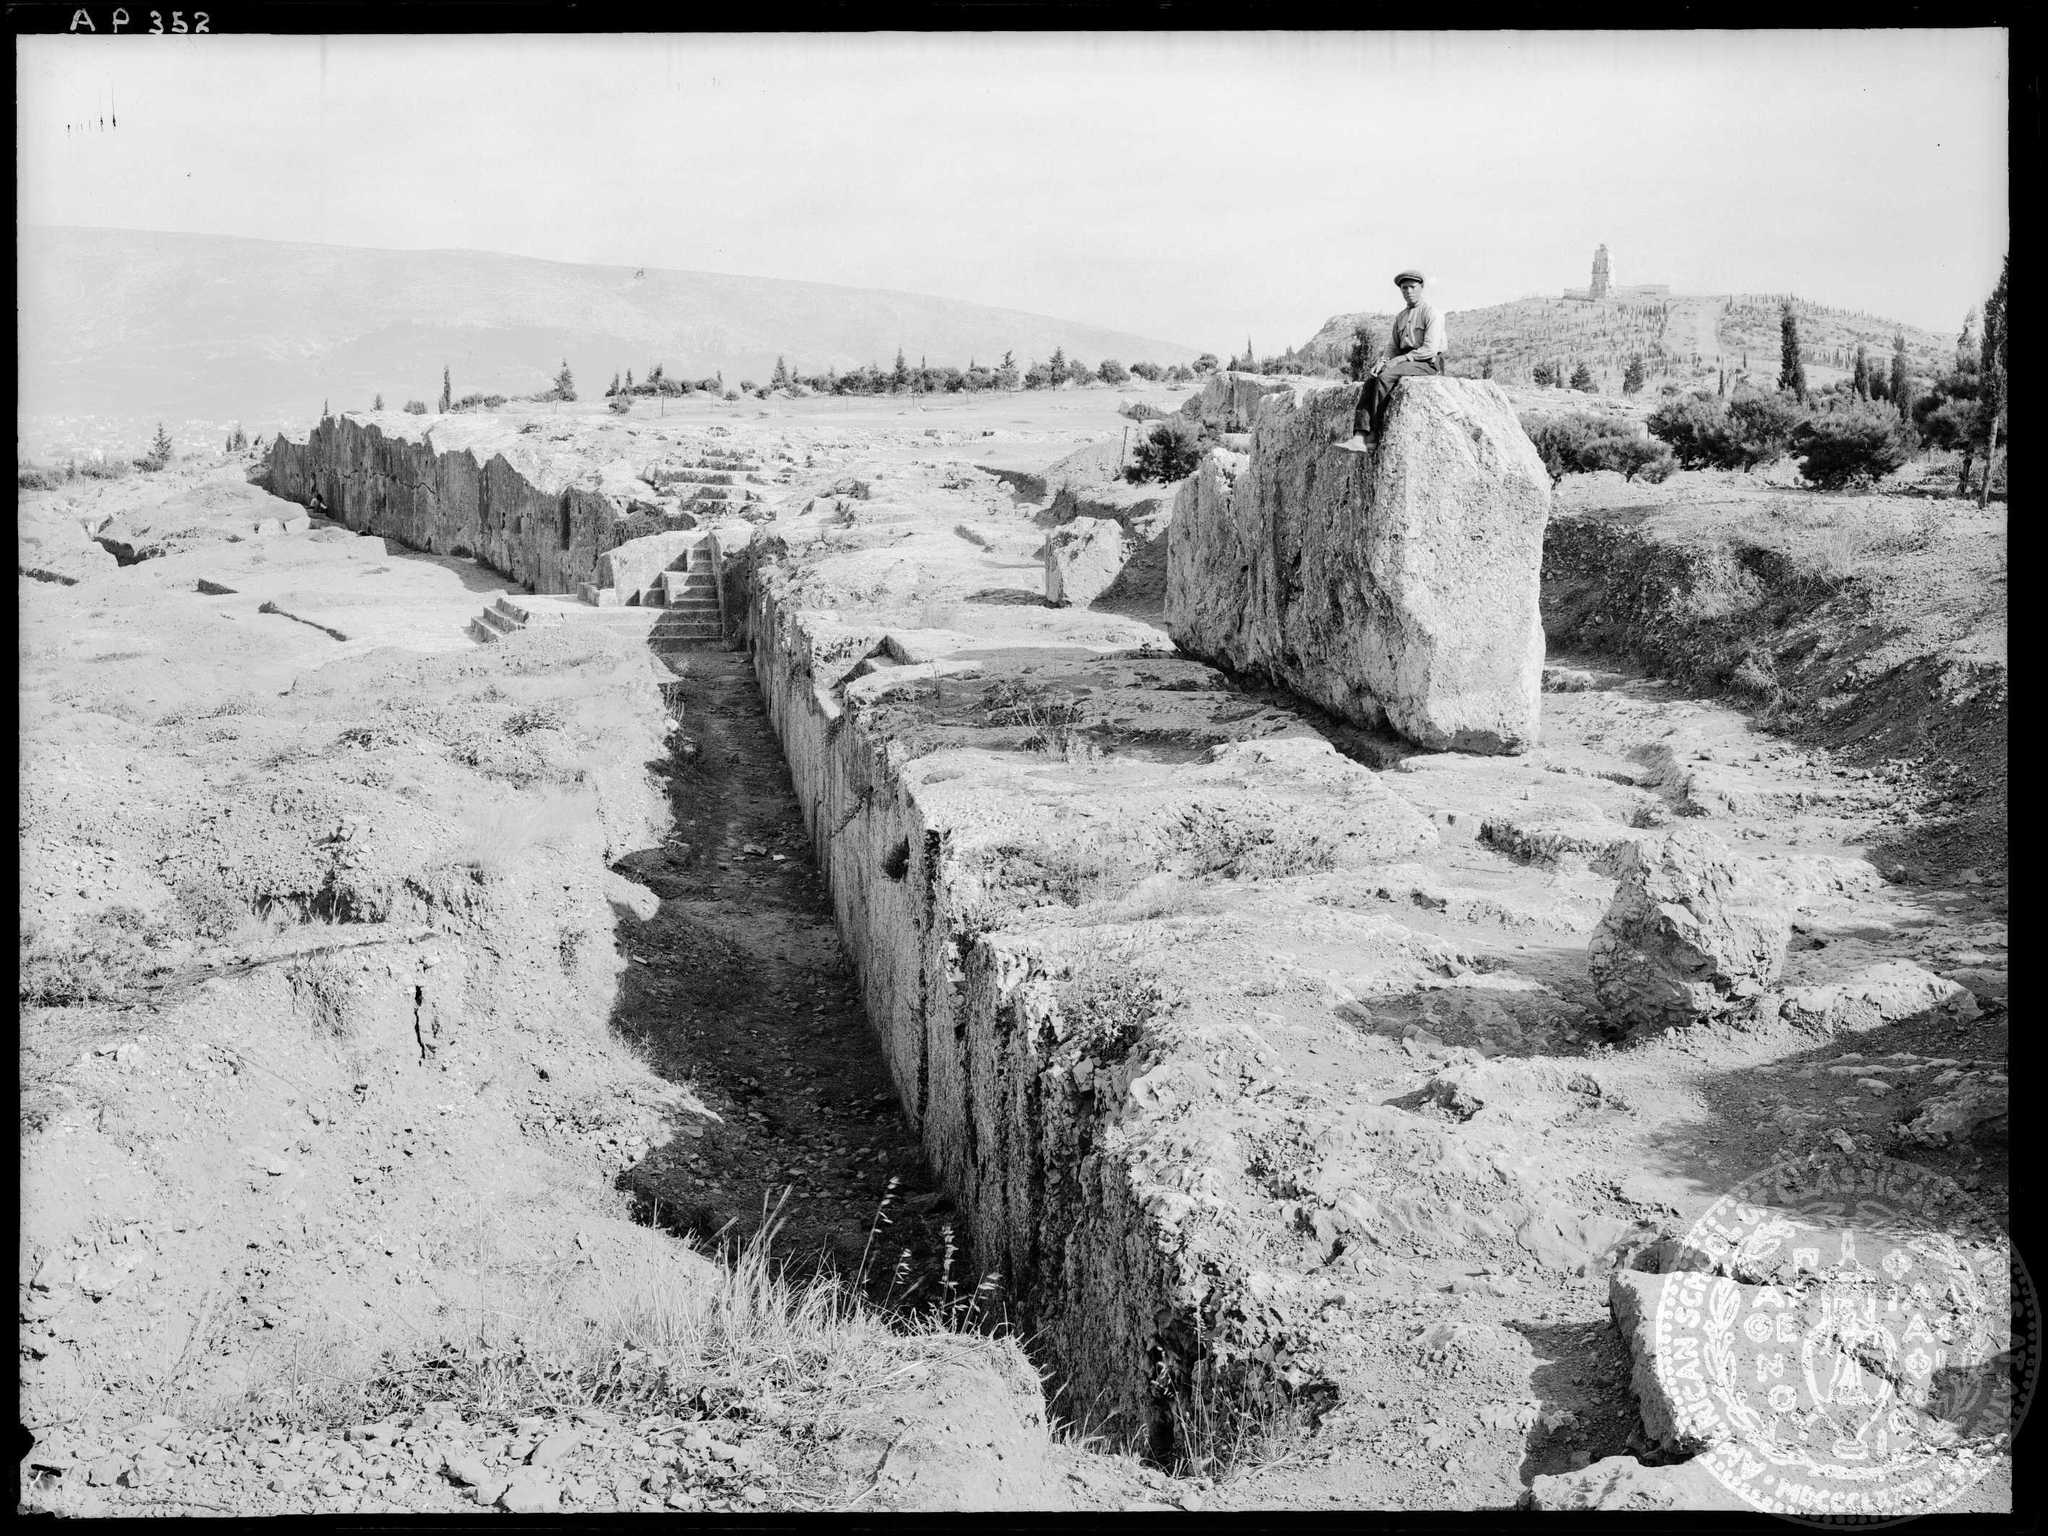 The Pnyx, a place of inspiration for the ancient and modern times (American School of Classical Studies at Athens, Archaeological Photographic Collection, AP 0352).